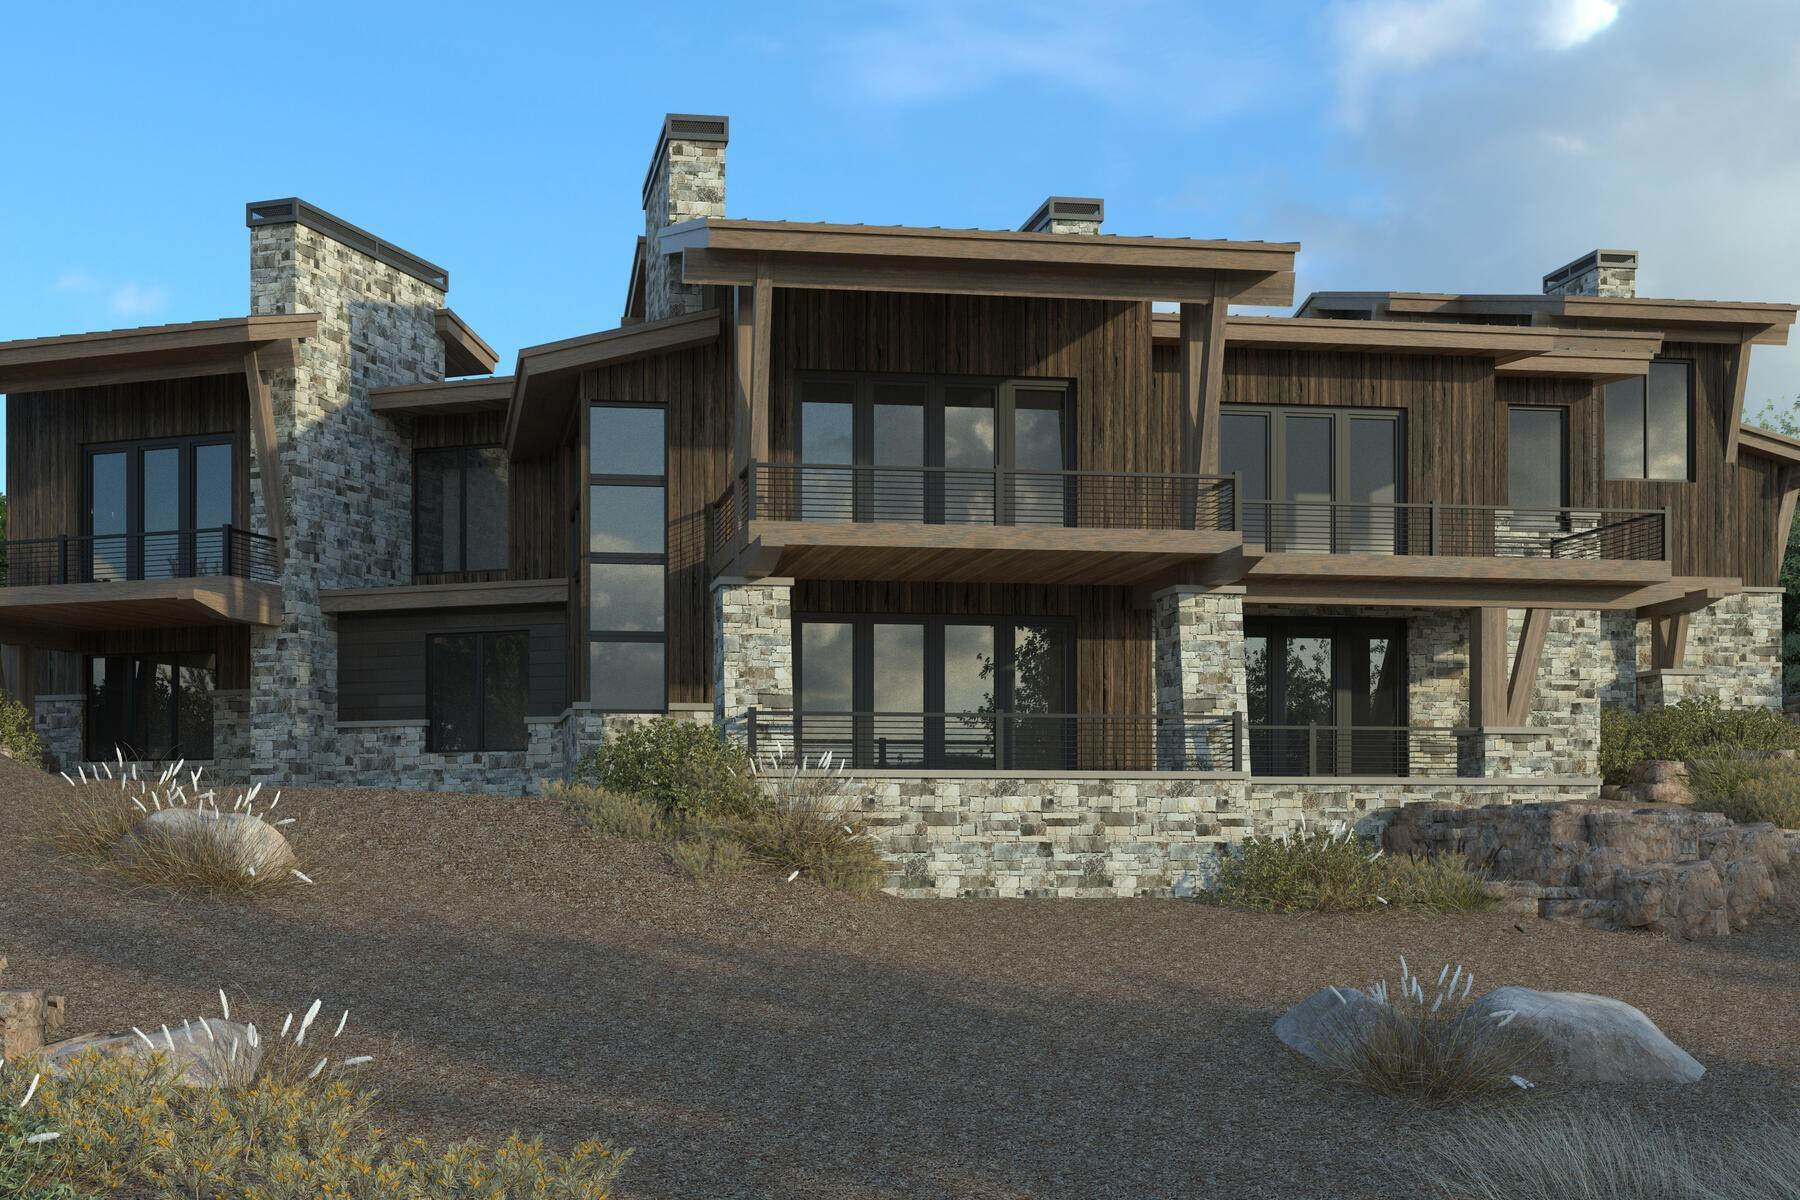 Single Family Homes for Sale at New Construction Home With Mountain Views 4304 Aspen Camp Loop Park City, Utah 84098 United States